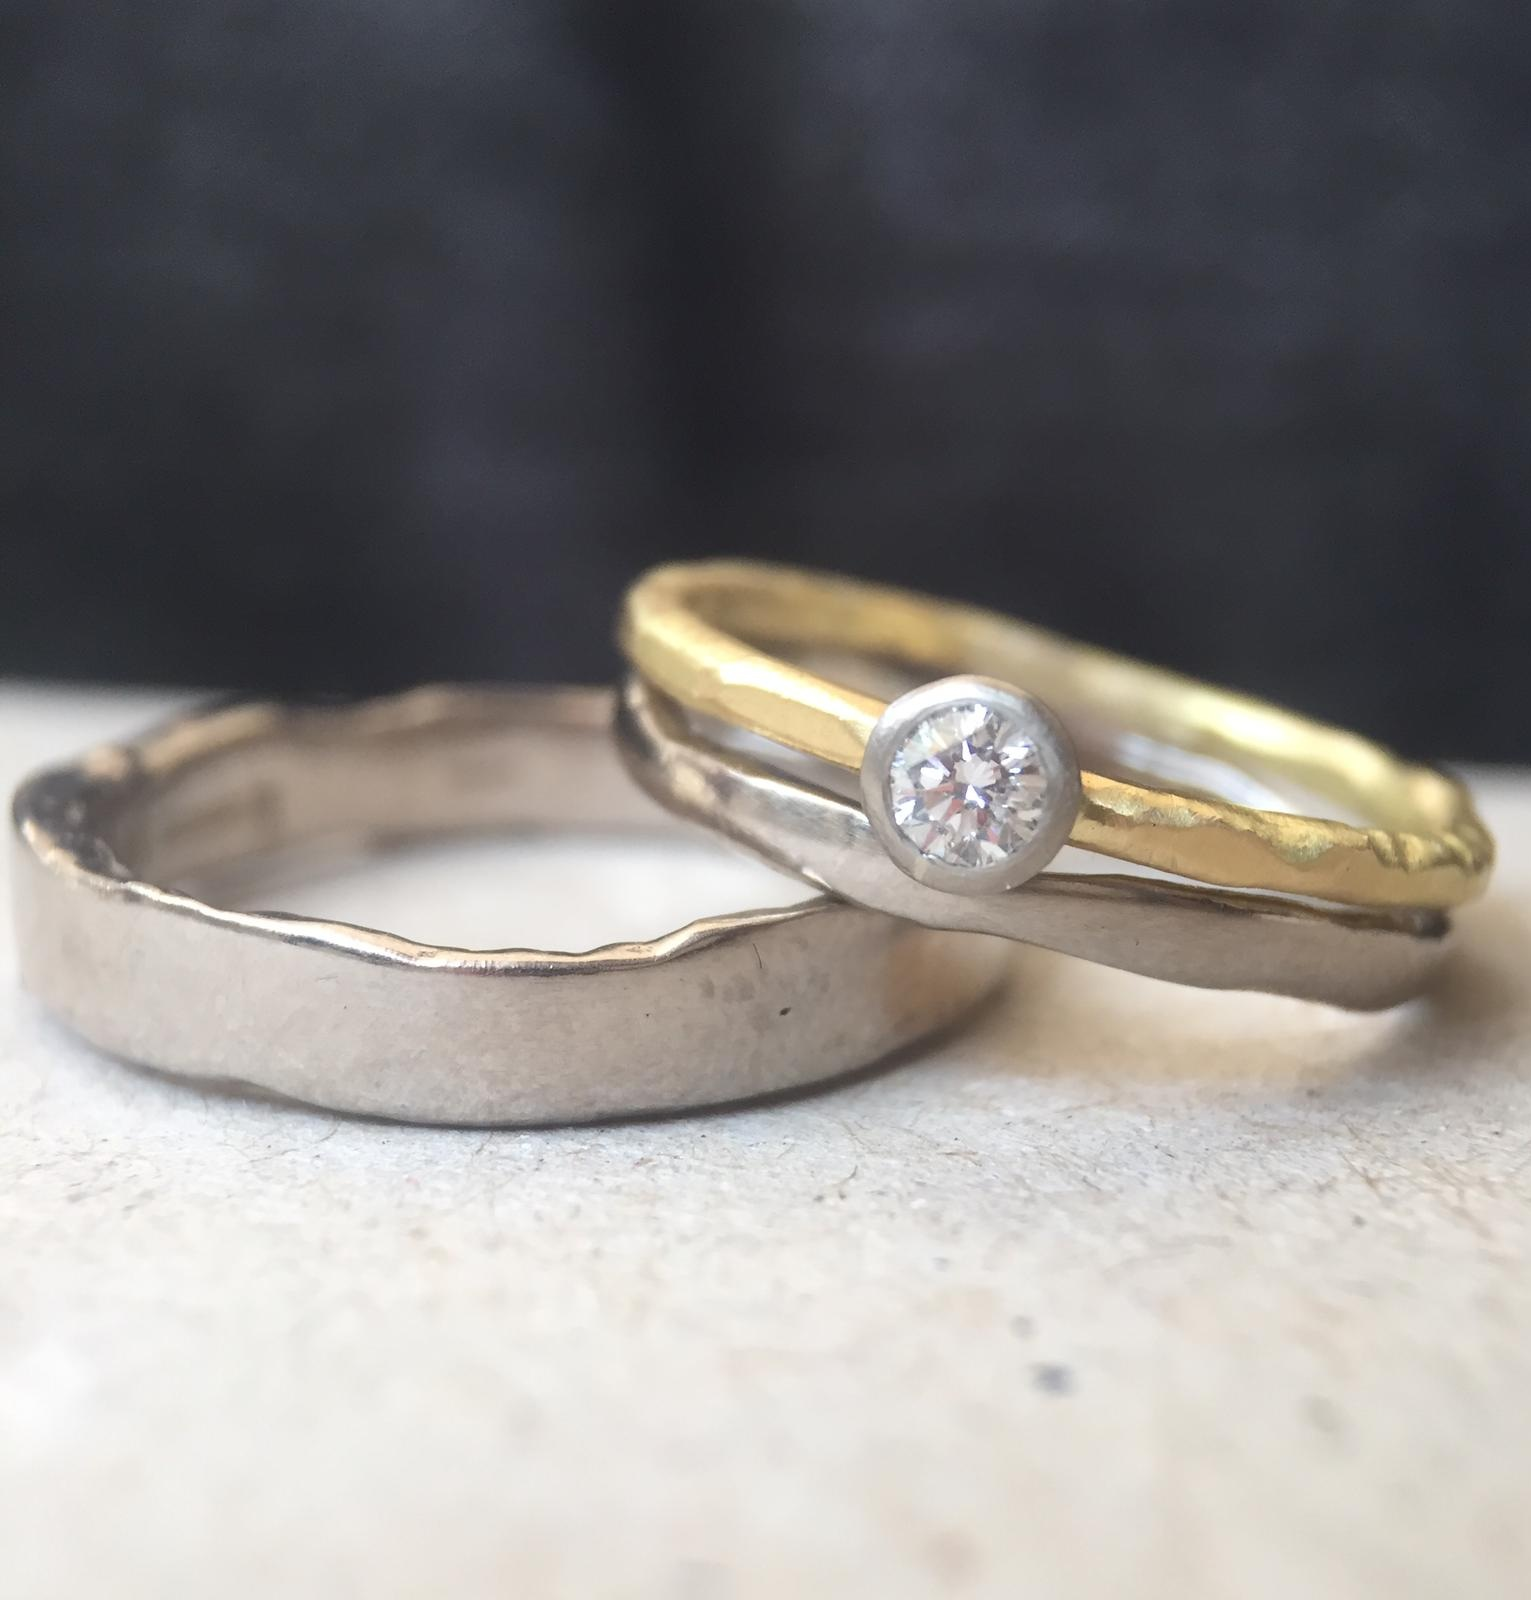 All of our wedding ring range is available in fair trade gold.  Image shows 18ct white gold Taw and Sid along with a diamond engagement ring in 18ct fair trade yellow and white gold by  Erin Cox .